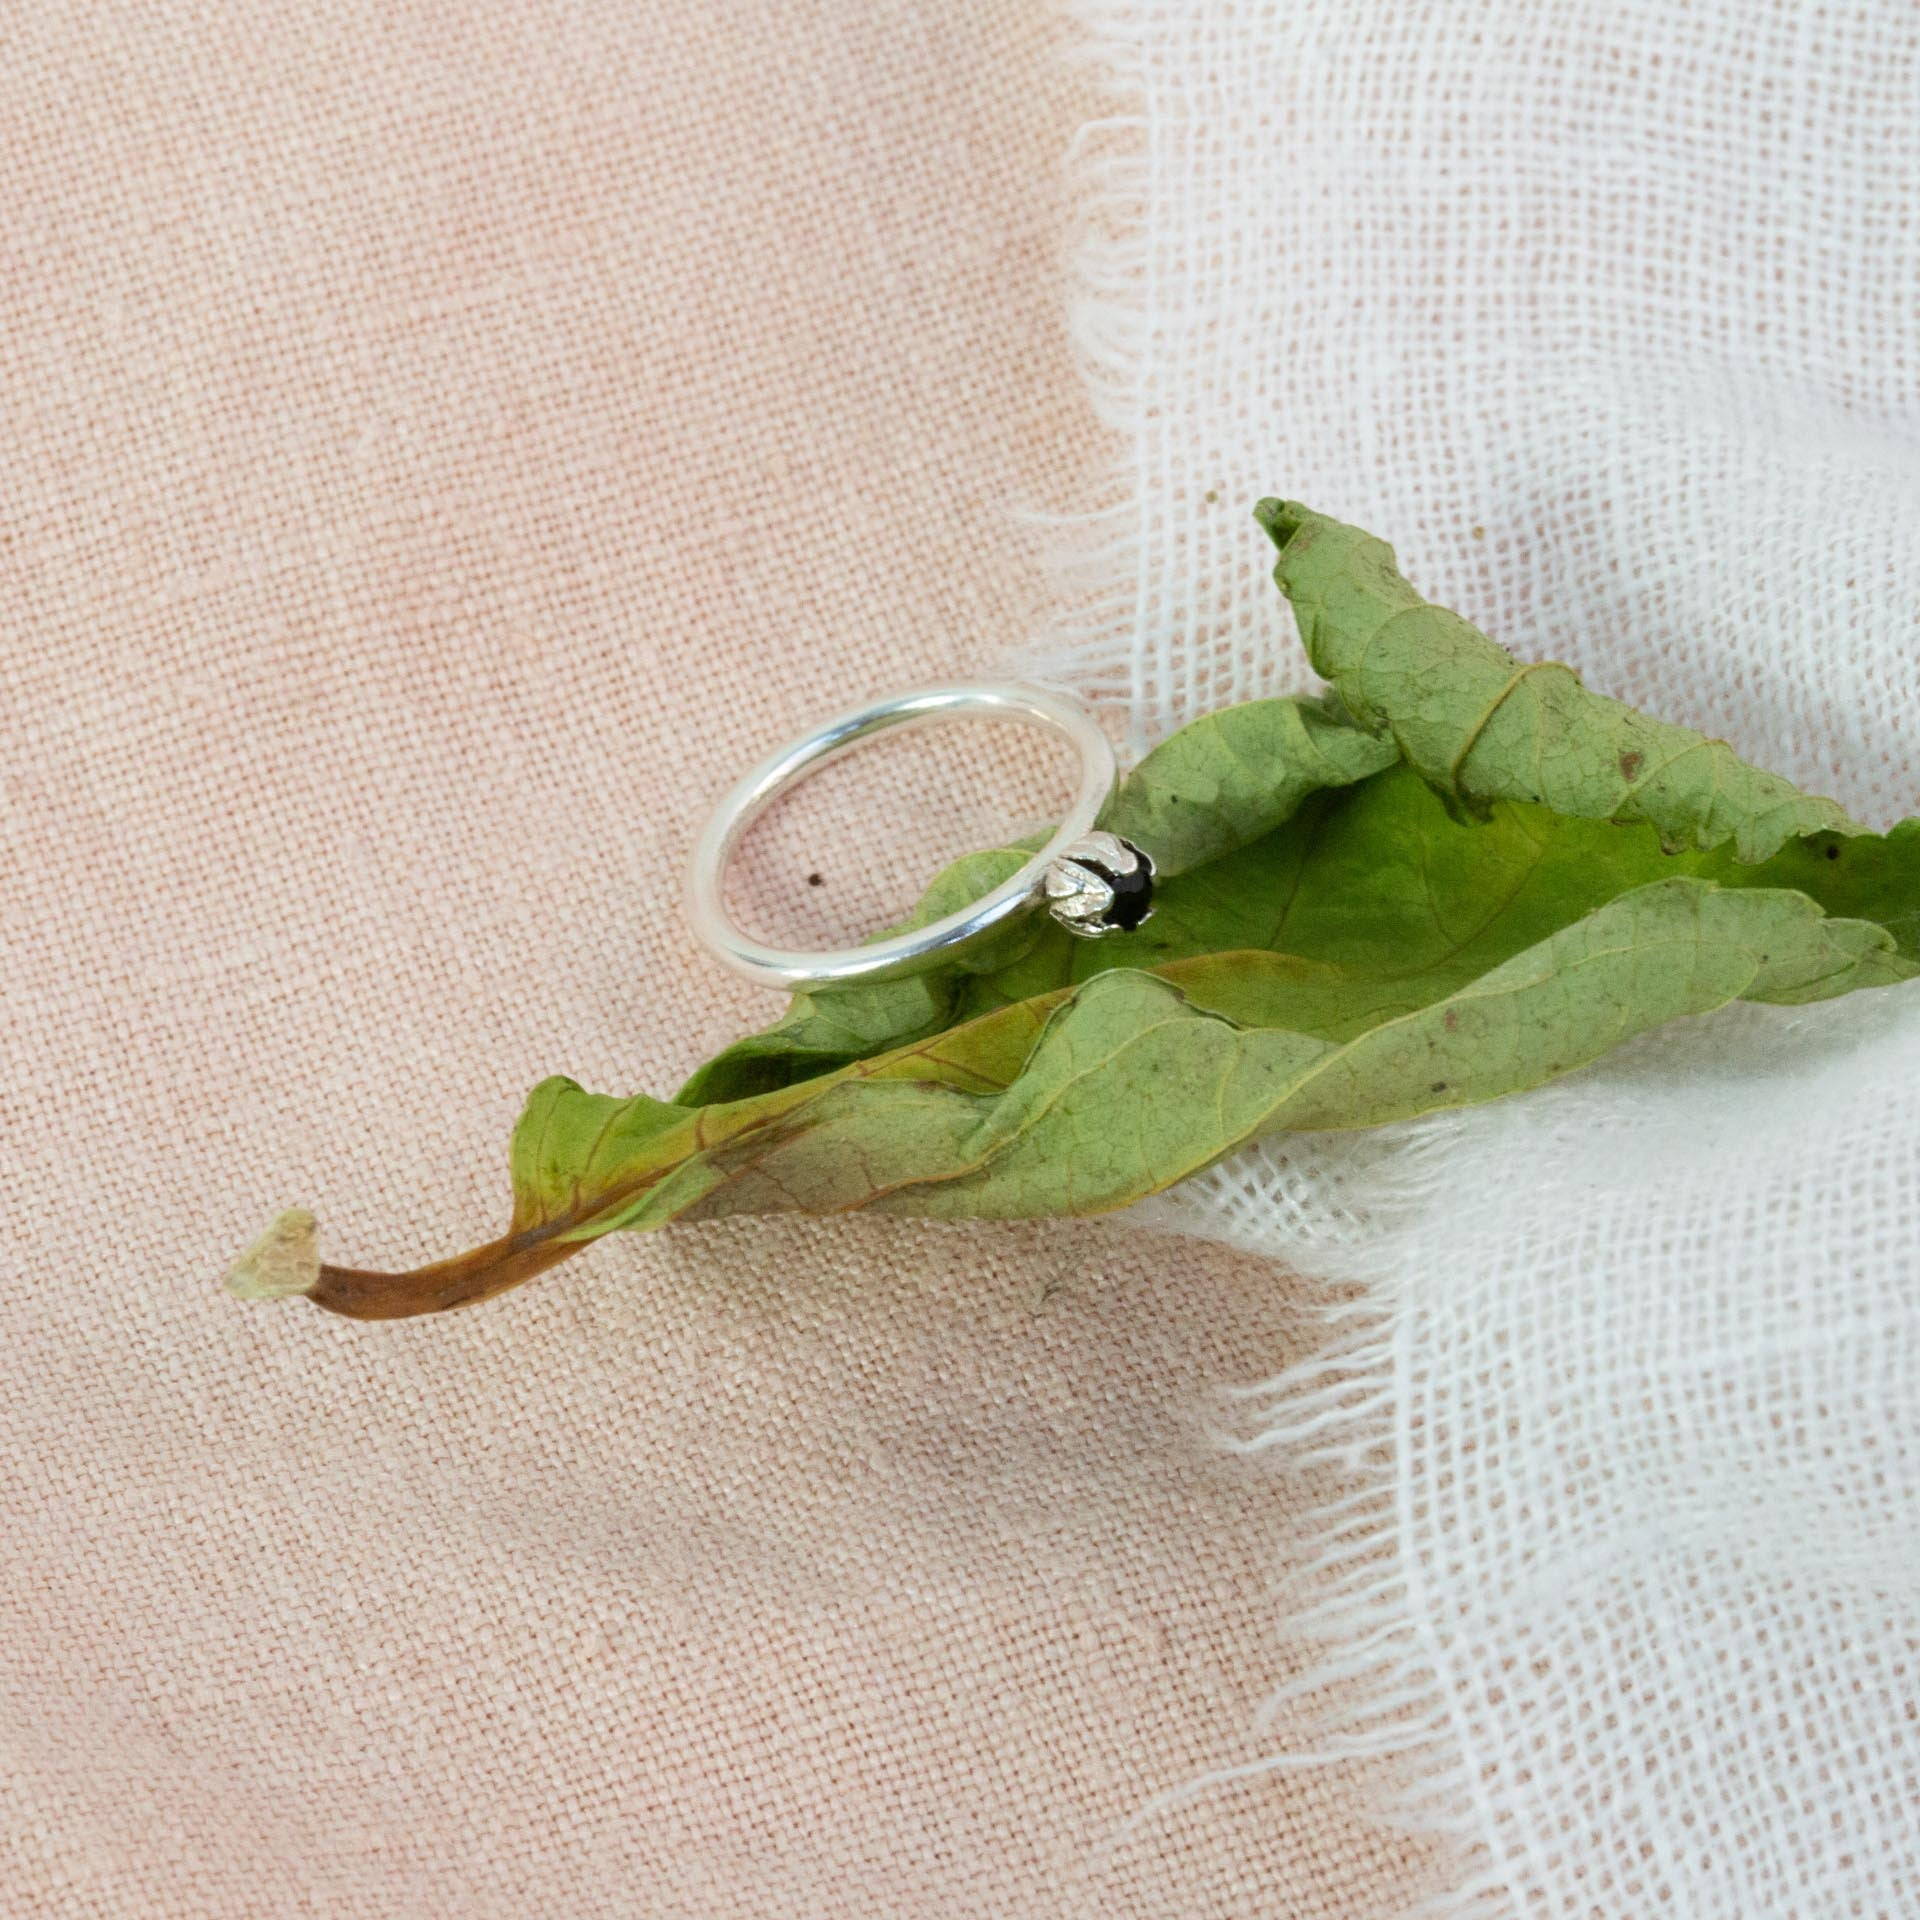 silver bud diamond ring restring on green leaf on cloth material